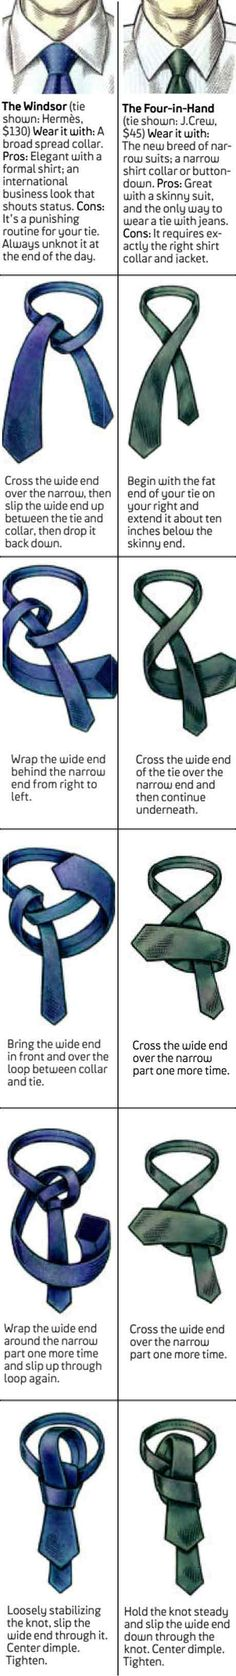 How to tie a Windsor and four in hand tie